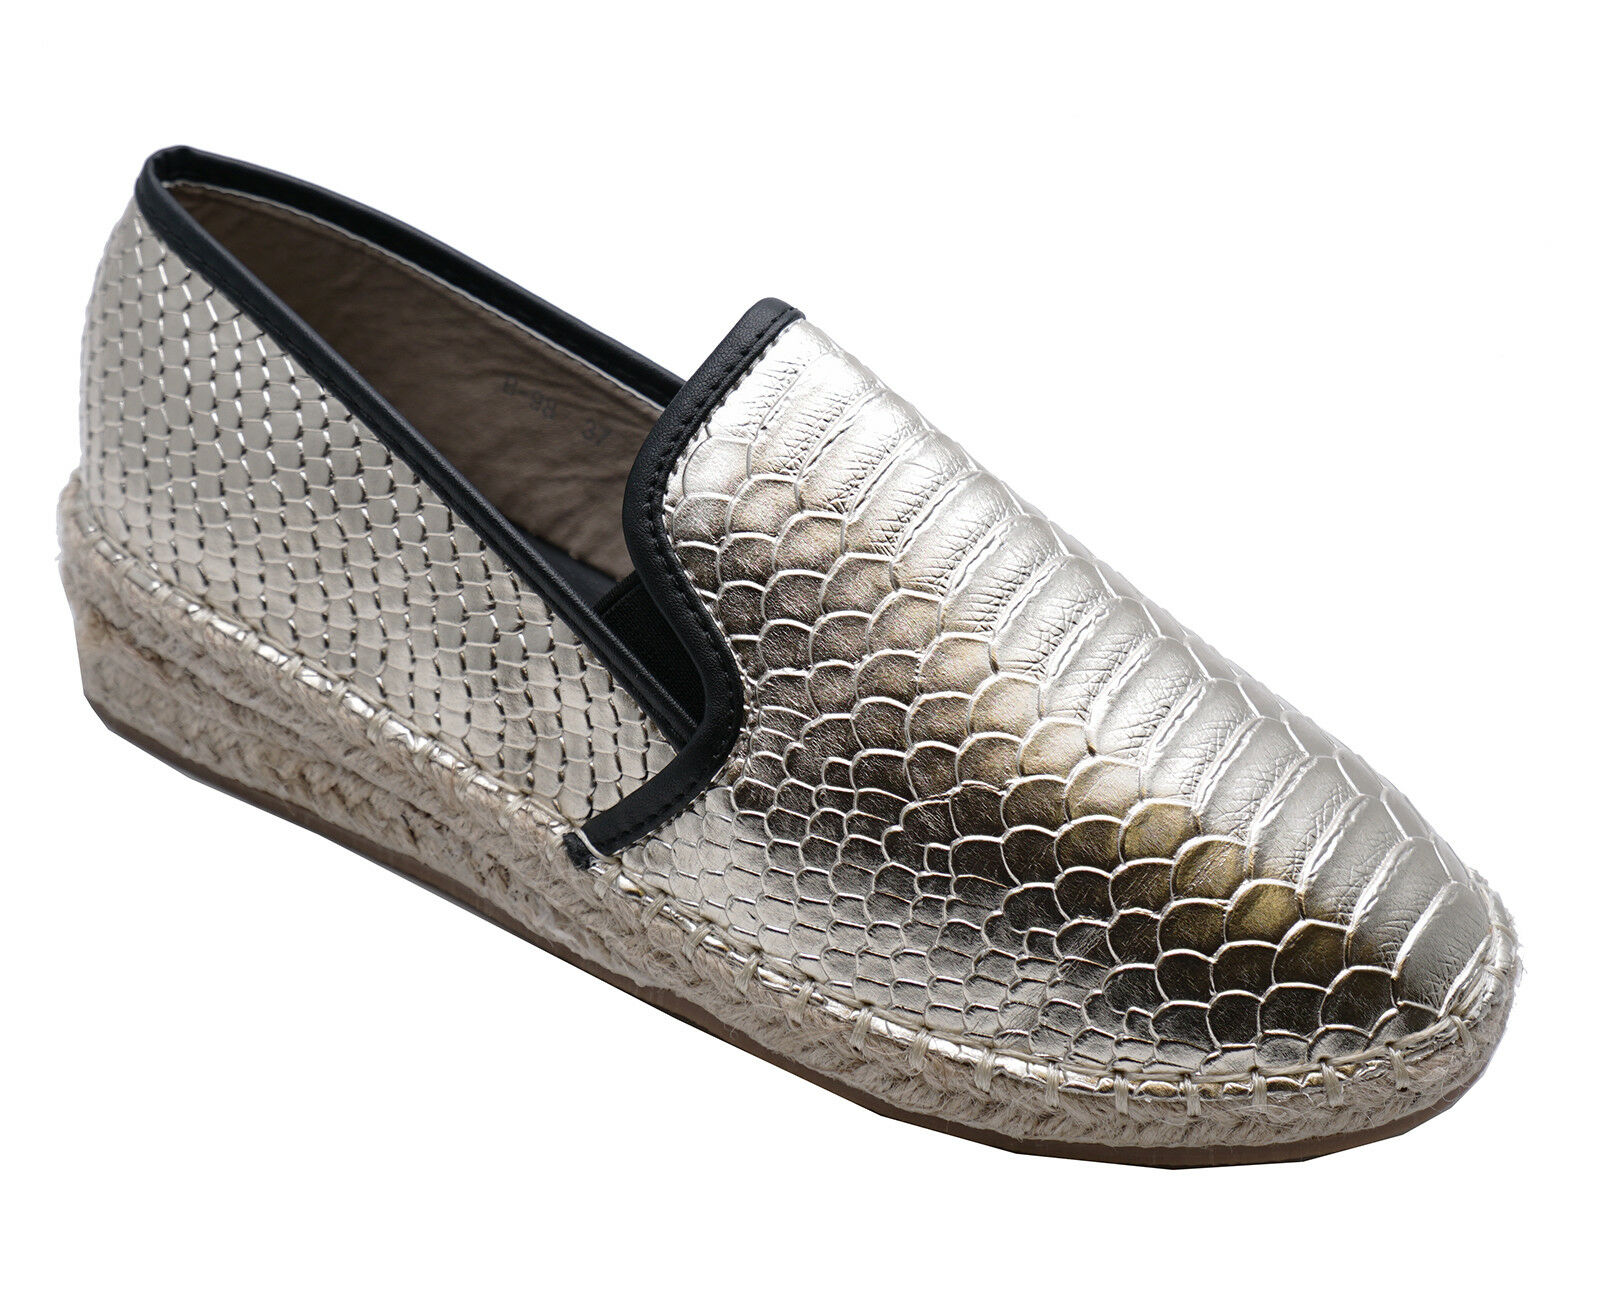 LADIES GOLD SLIP-ON FLAT LOAFERS ESPADRILLE PLIMSOLL CASUAL PUMPS SHOES UK 3-8